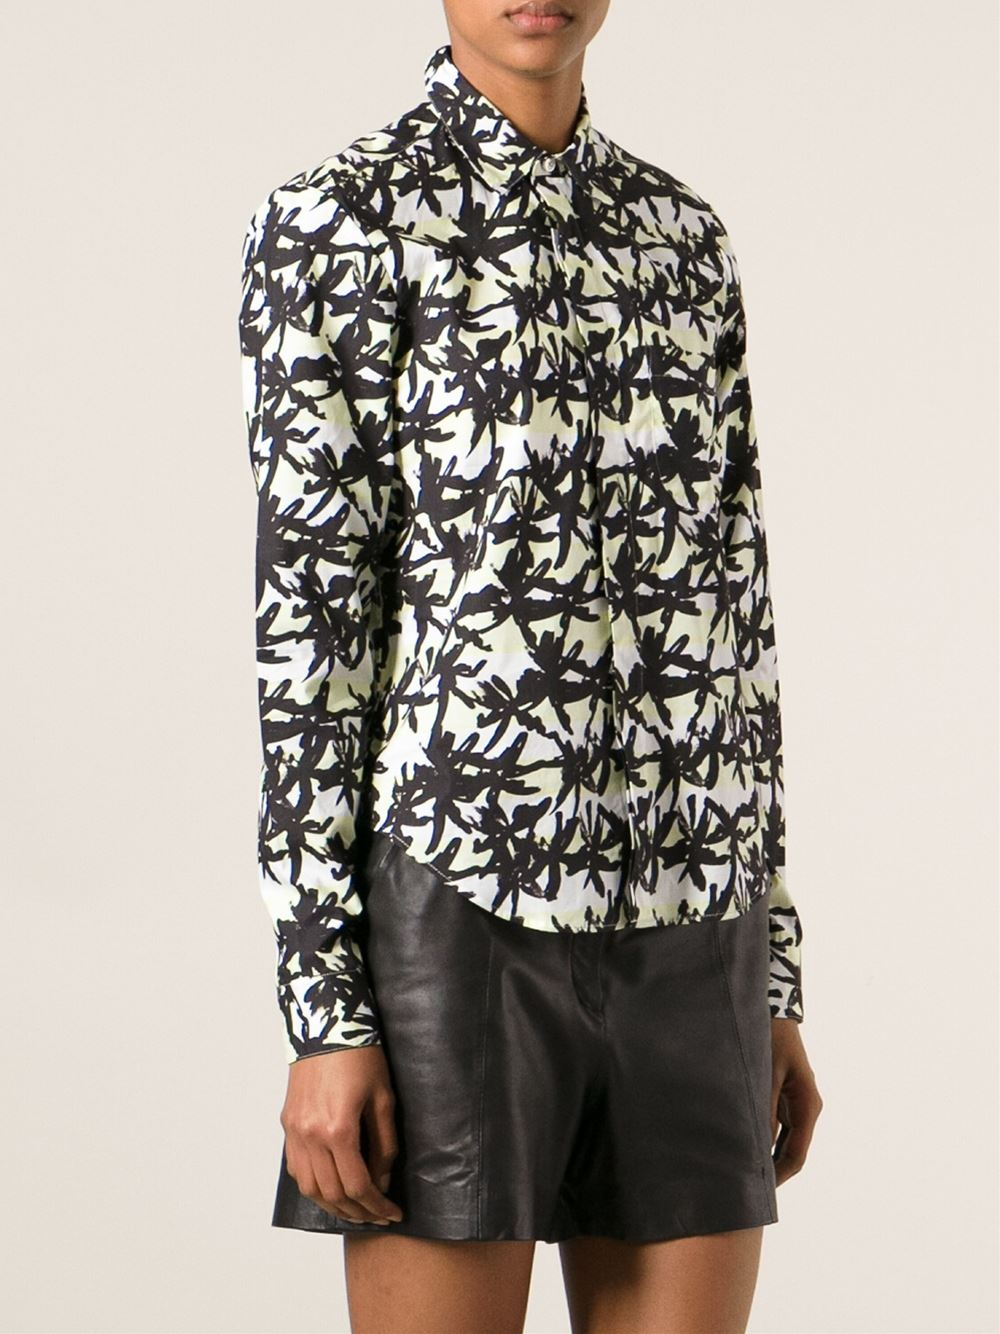 Kenzo Palm Print Shirt - Francis Ferent - Farfetch.com